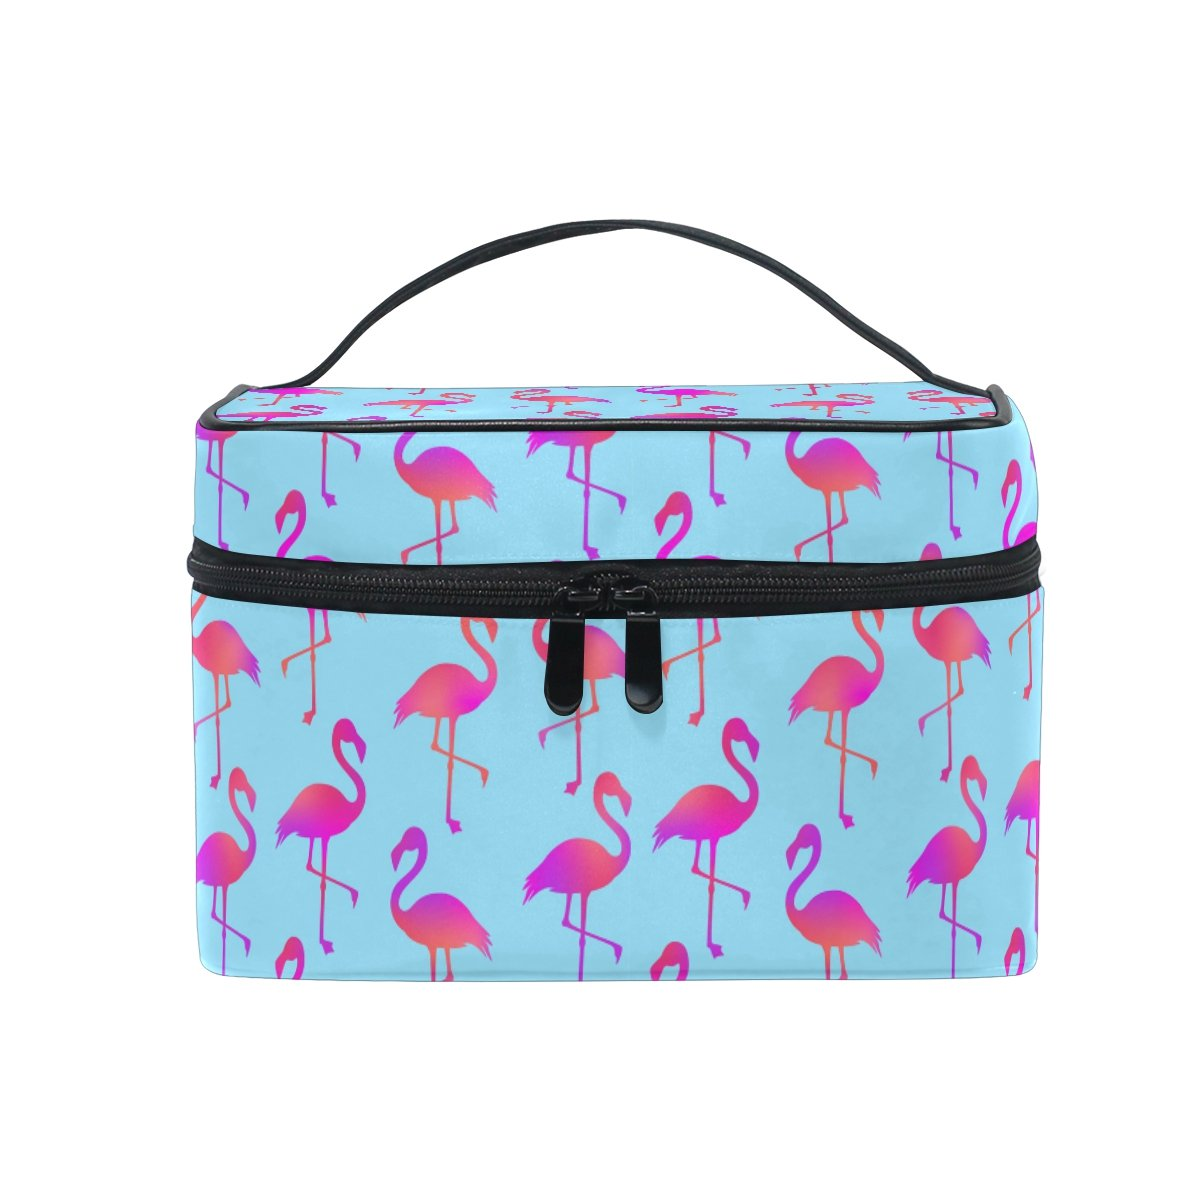 177499b2085a Amazon.com   Women Cosmetic Bags Waterproof Wash Bags Portable Travel  Toiletry Pouch Flamingo Printing Makeup Bag With Zipper   Beauty